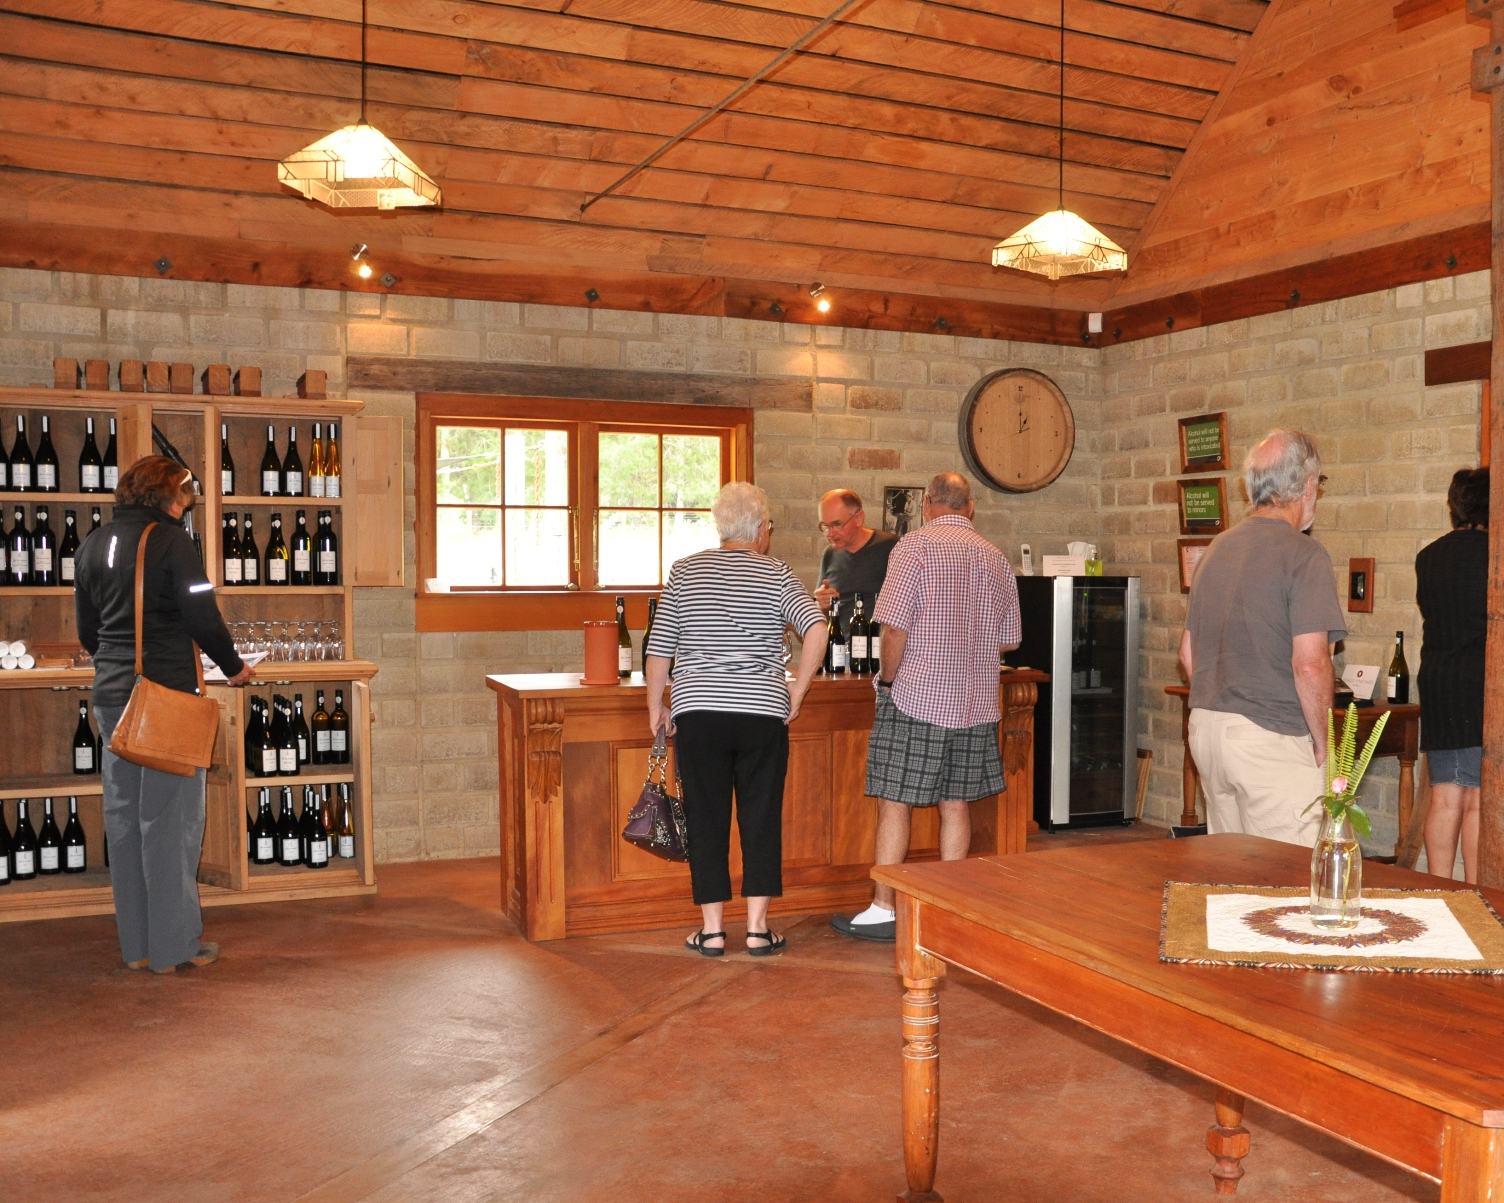 Tony, the winemaker taking guests through a wine tasting